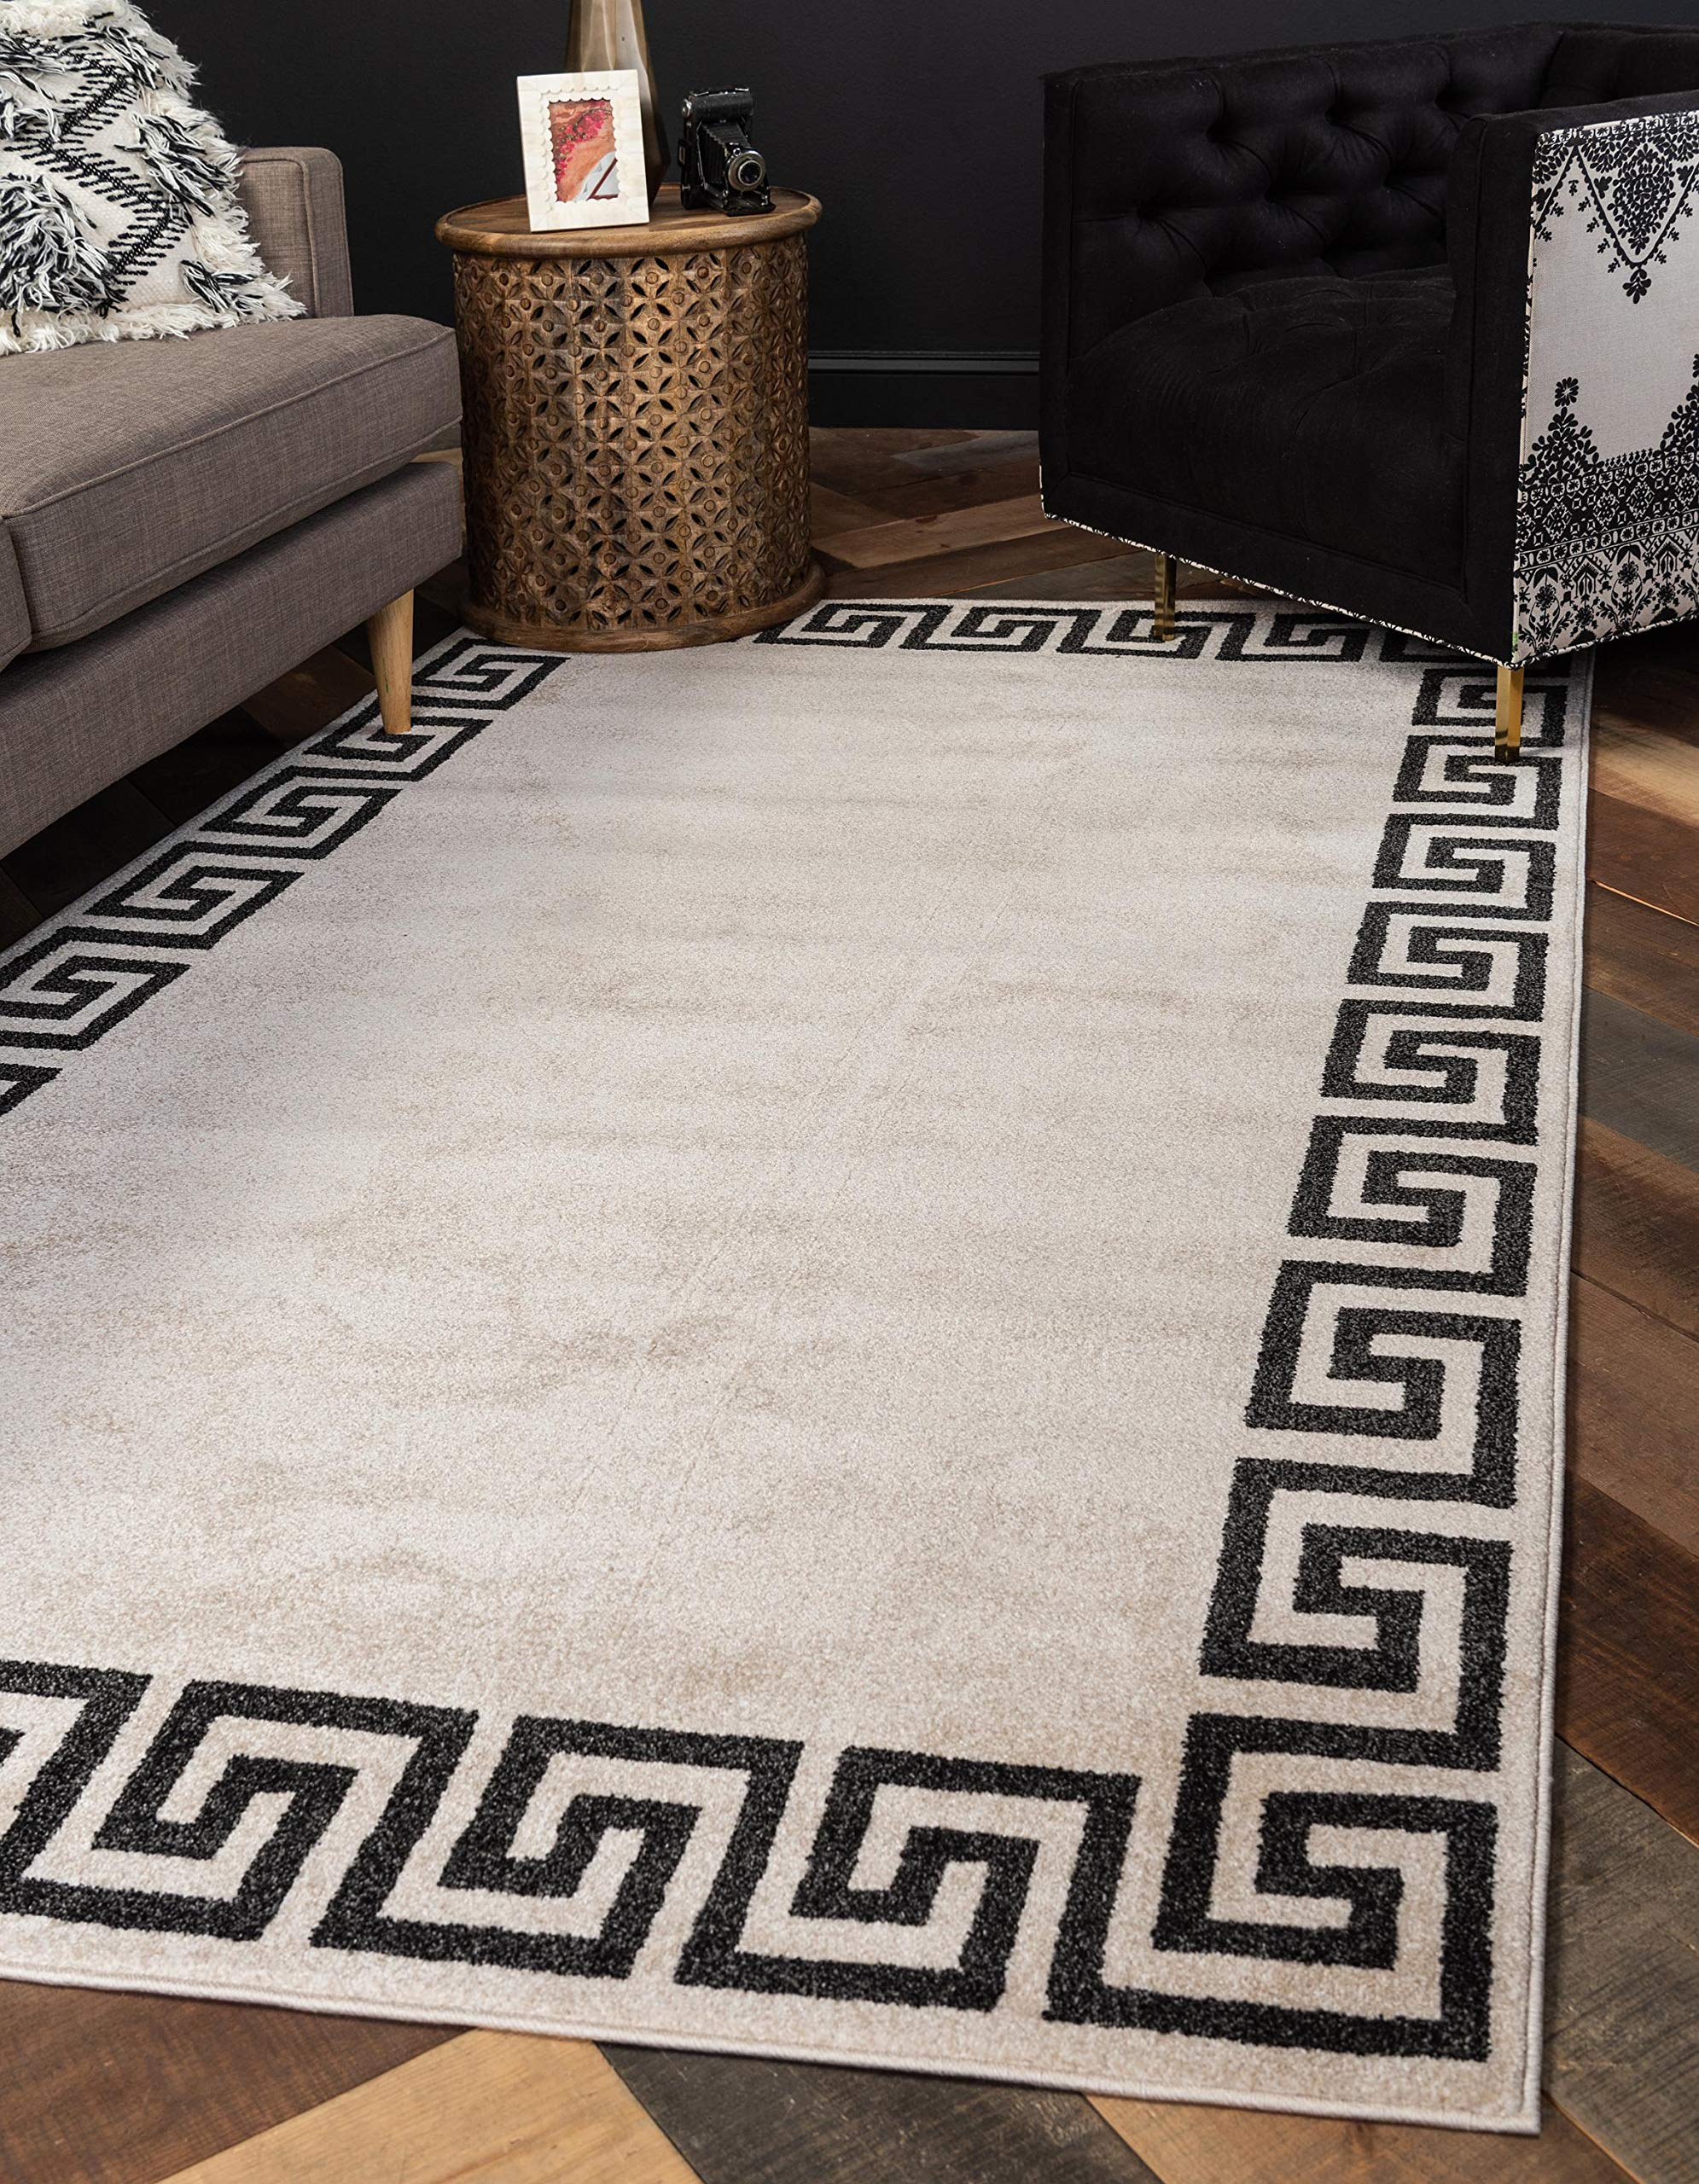 Unique Loom Athens Geometric Casual Area Rug, 5' x 8' Rectangle, Beige/Black